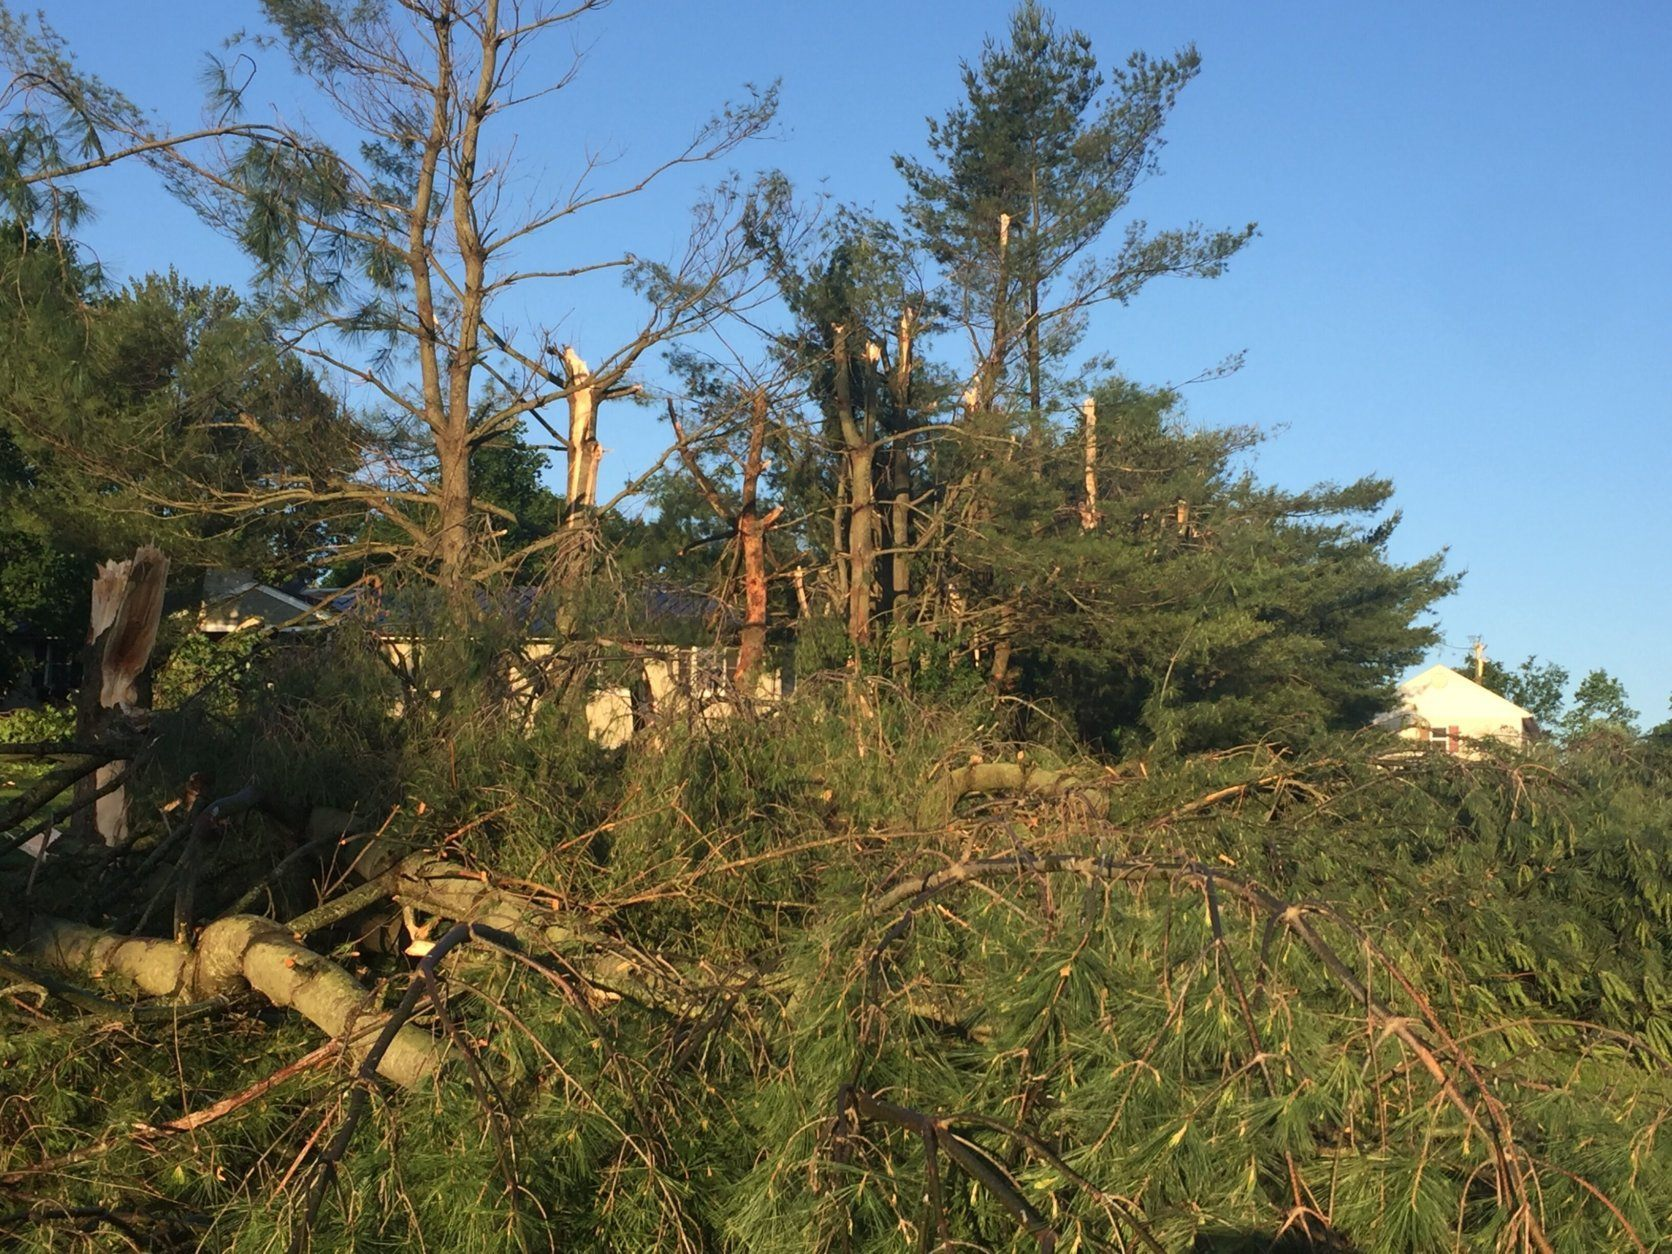 Many trees were toppled over Angela Butler's backyard after Thursday's tornado in Howard County. She could barely see her driveway Friday morning. (WTOP/John Domen)